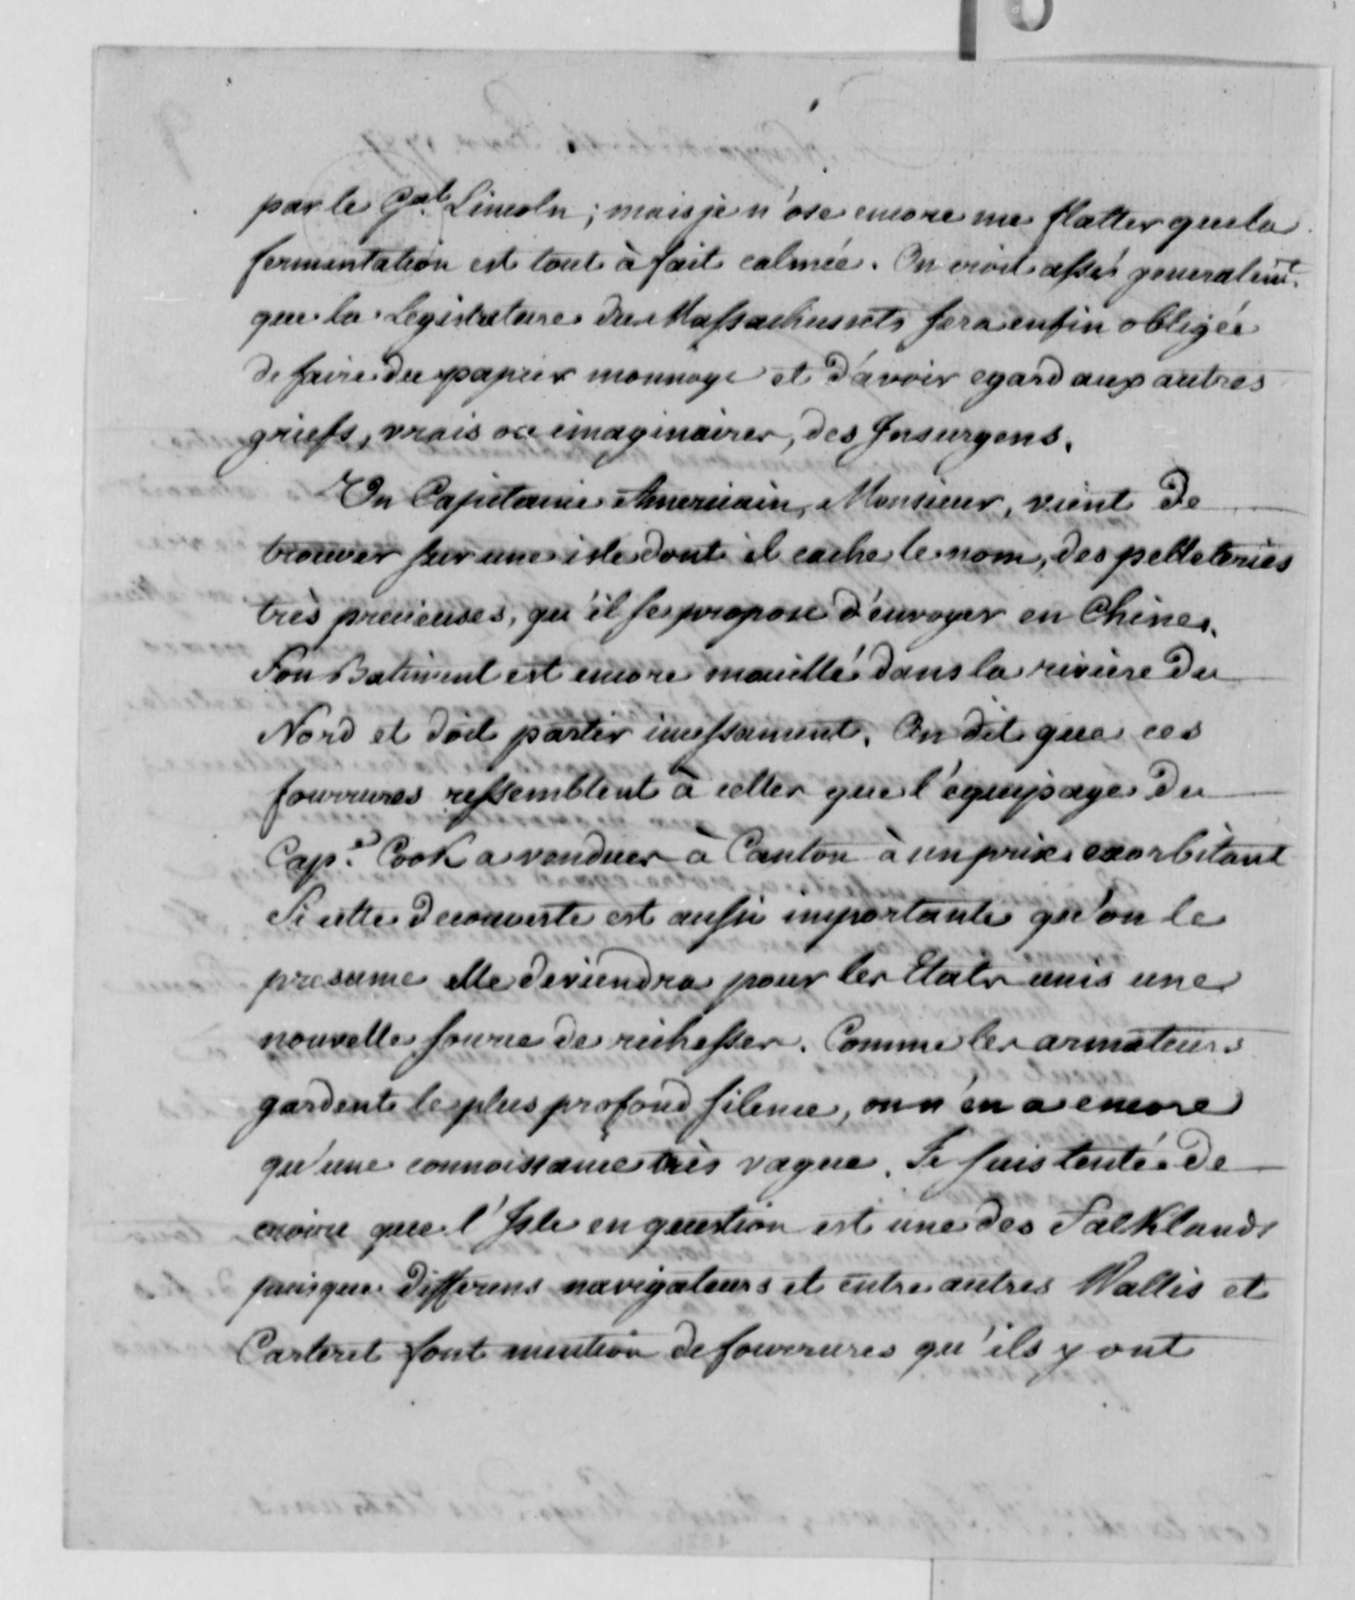 Thomas Jefferson to Louis Guillaume Otto, February 14, 1787